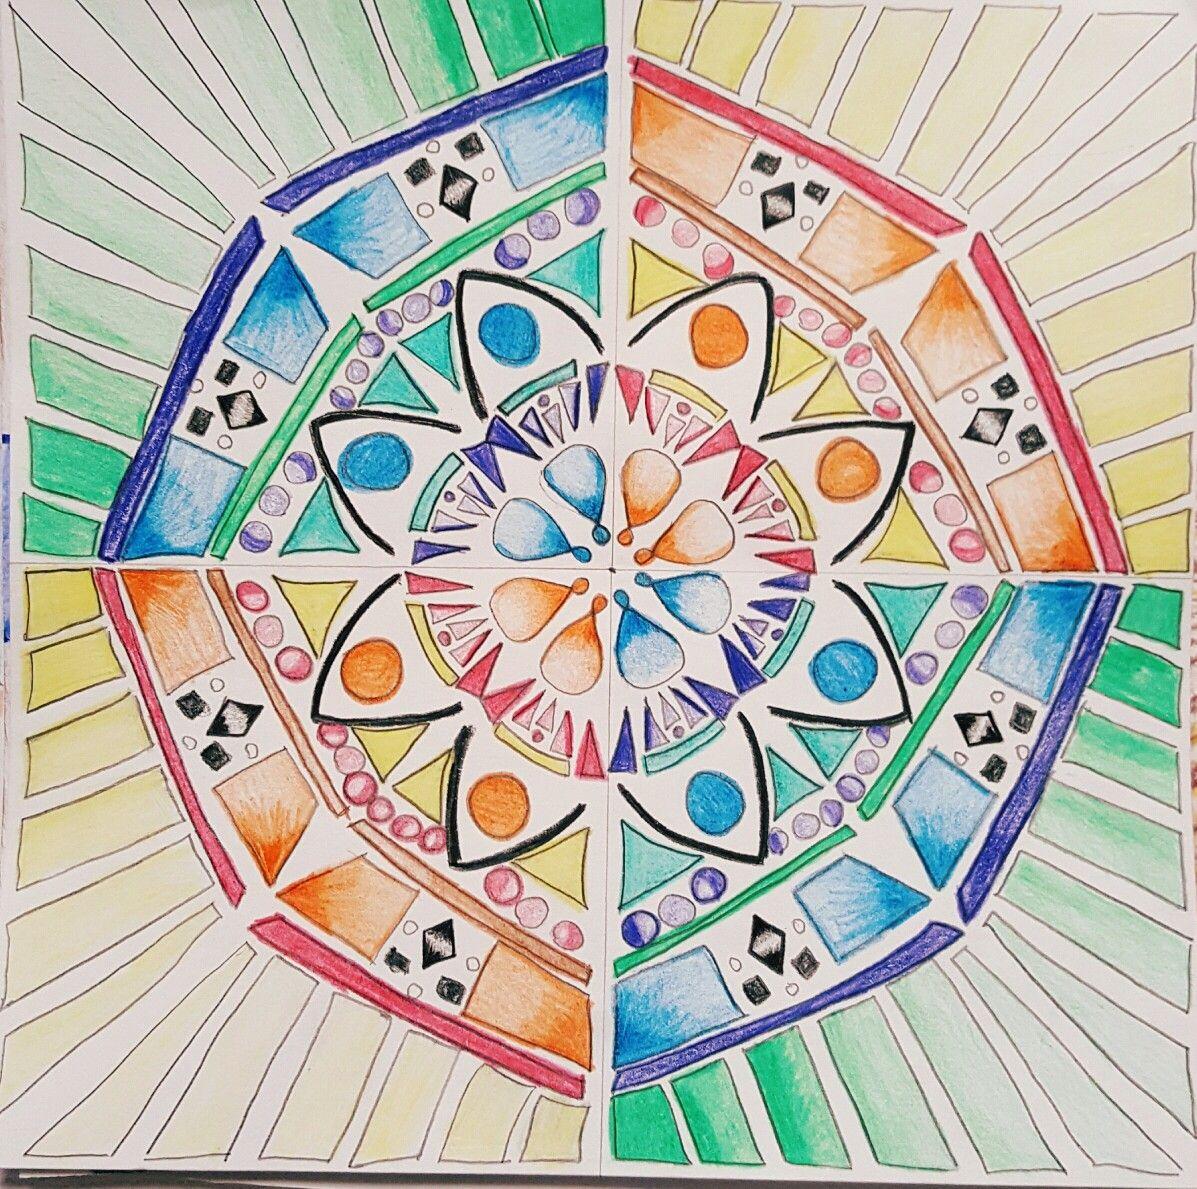 Symmetrical Balance Art Ed Central 8th Grade Lms Wooley